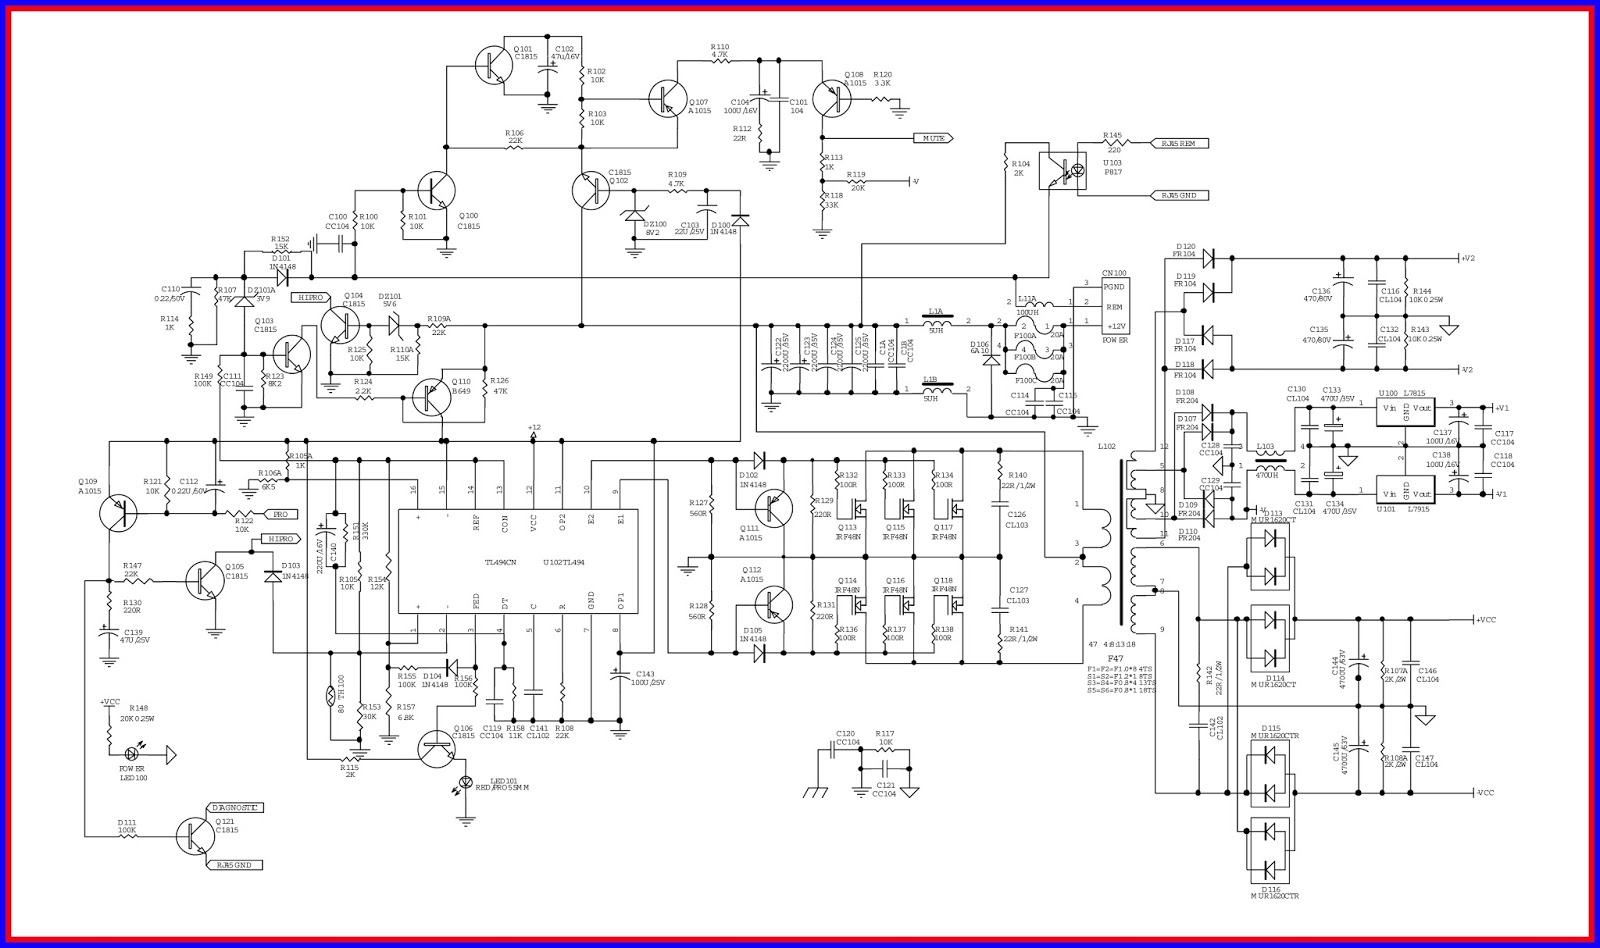 Infinity Subwoofer Amplifier Schematic - Auto Electrical Wiring ...